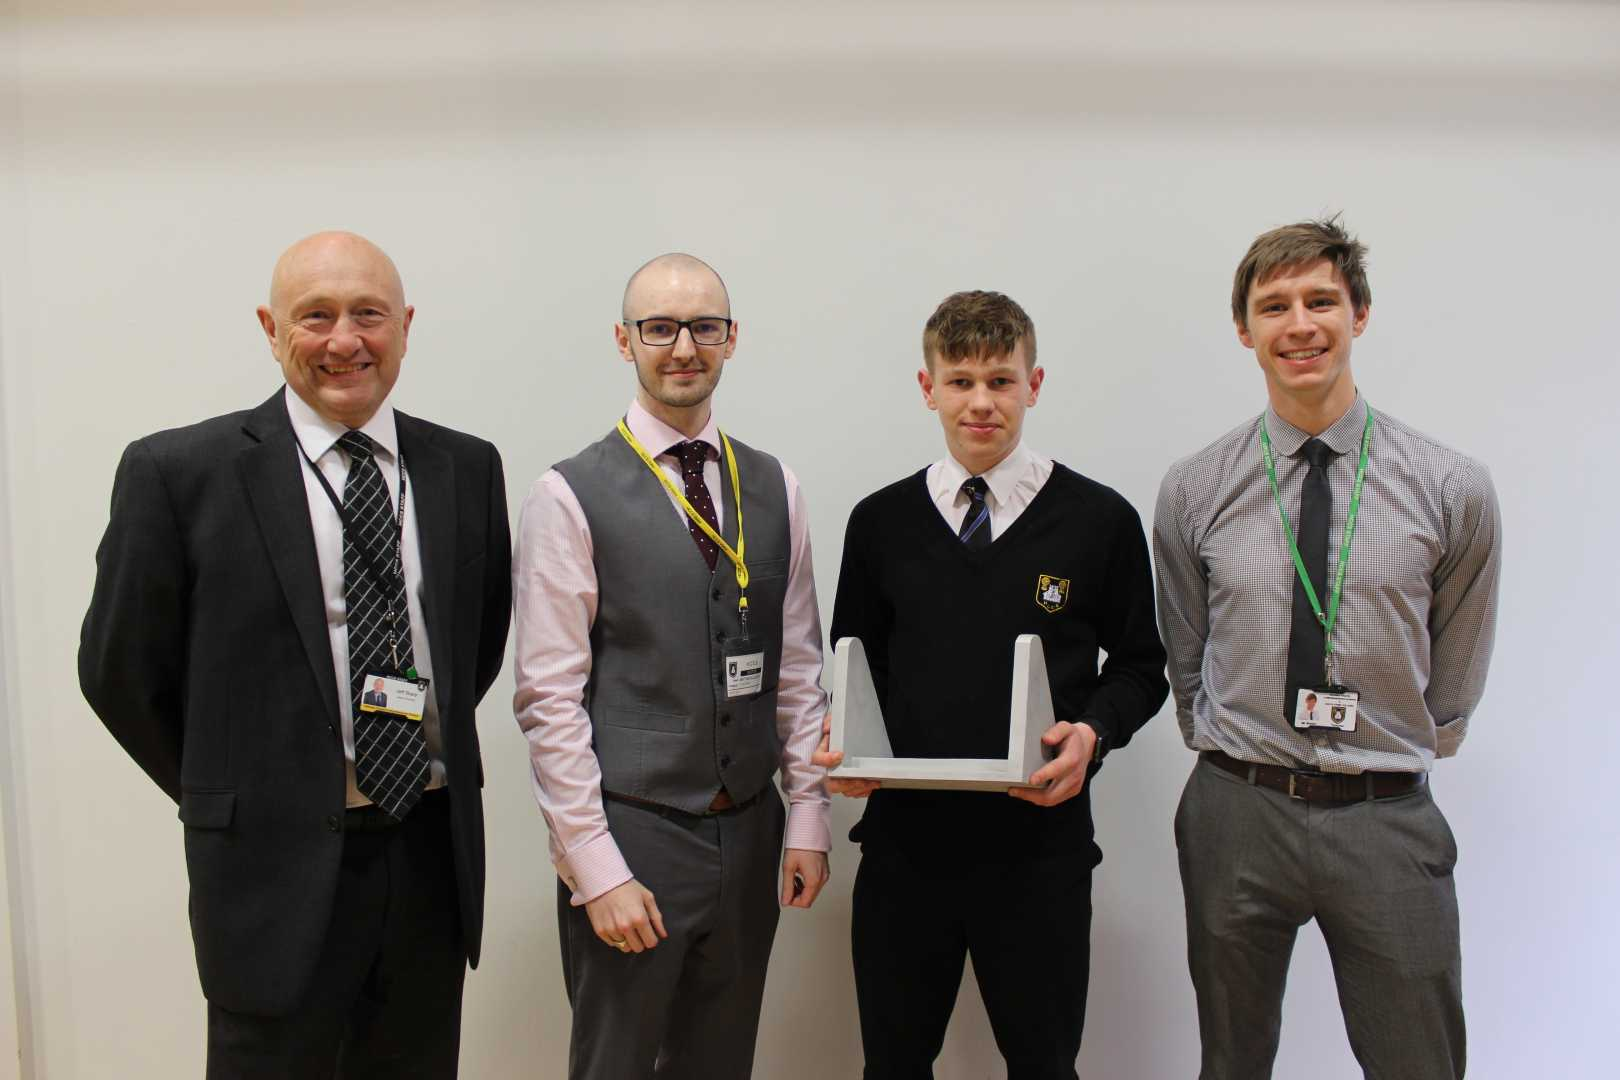 L to R: Jeff Sharp (Head of School at Holmes Chapel Comprehensive School), Matt McGillicuddy (PI Castings), Sam Wooler (GCSE Student) & Aron Rutter (Lead of Design and Technology at Holmes Chapel Comprehensive School) – image courtesy of PI Castings.